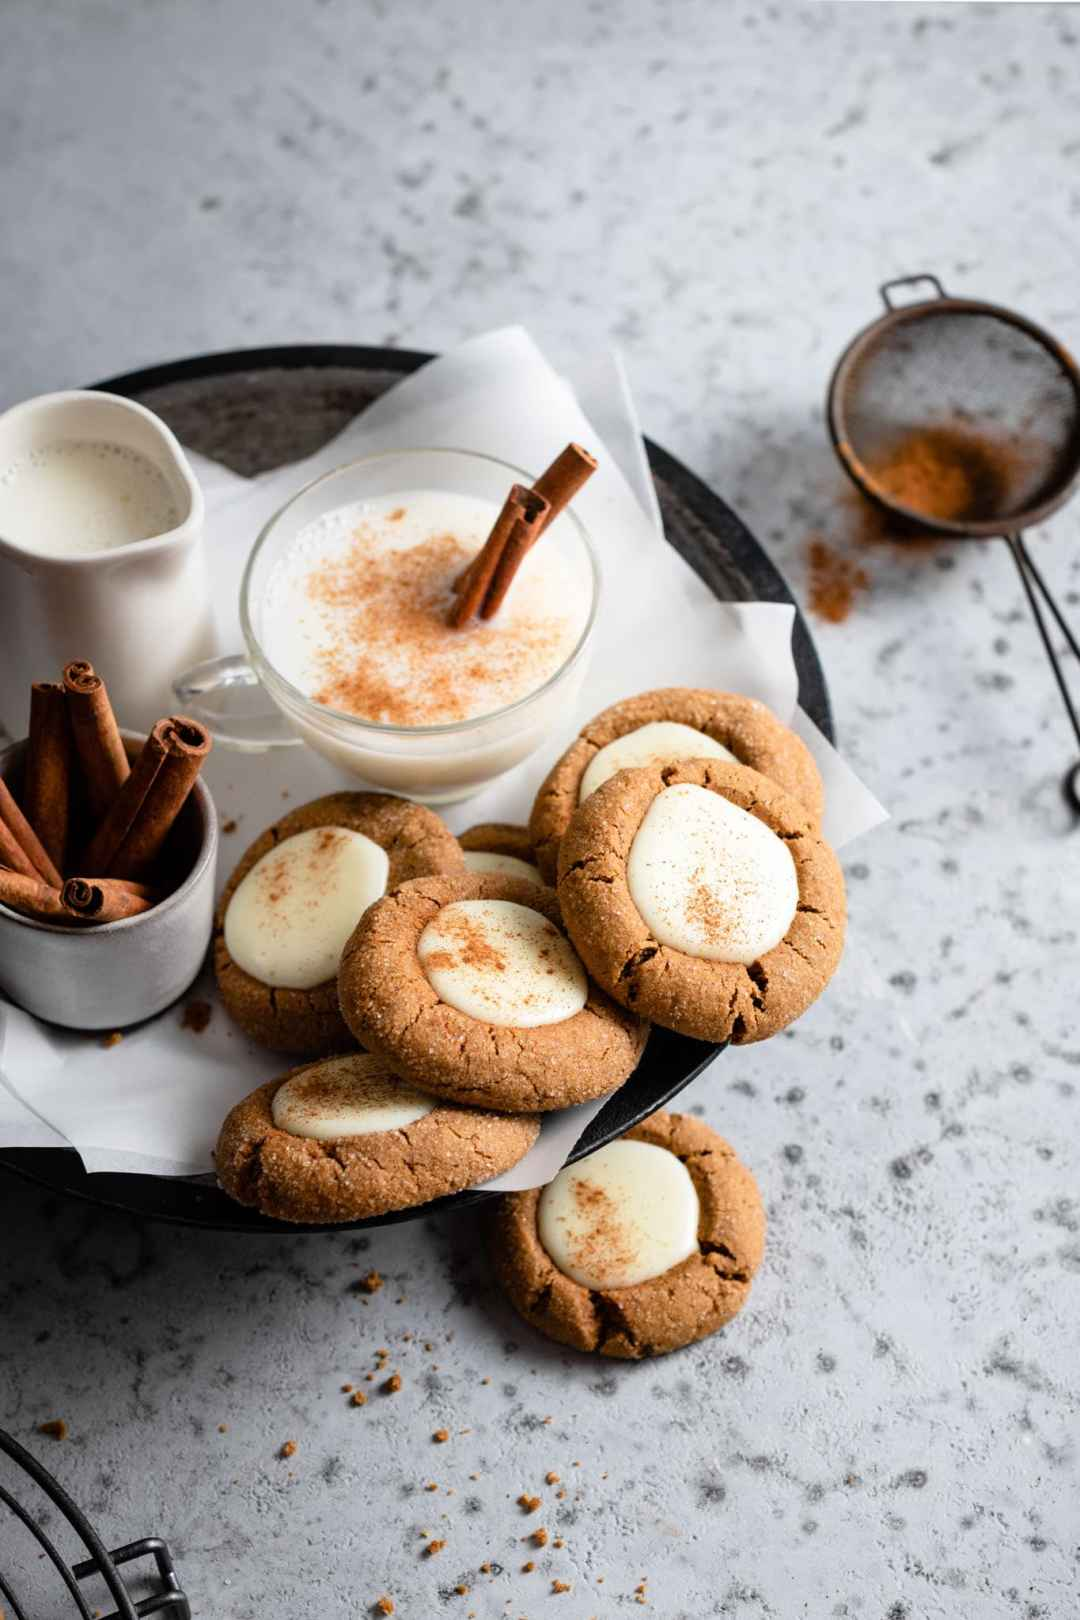 Eggnog served with gingerbread cookies